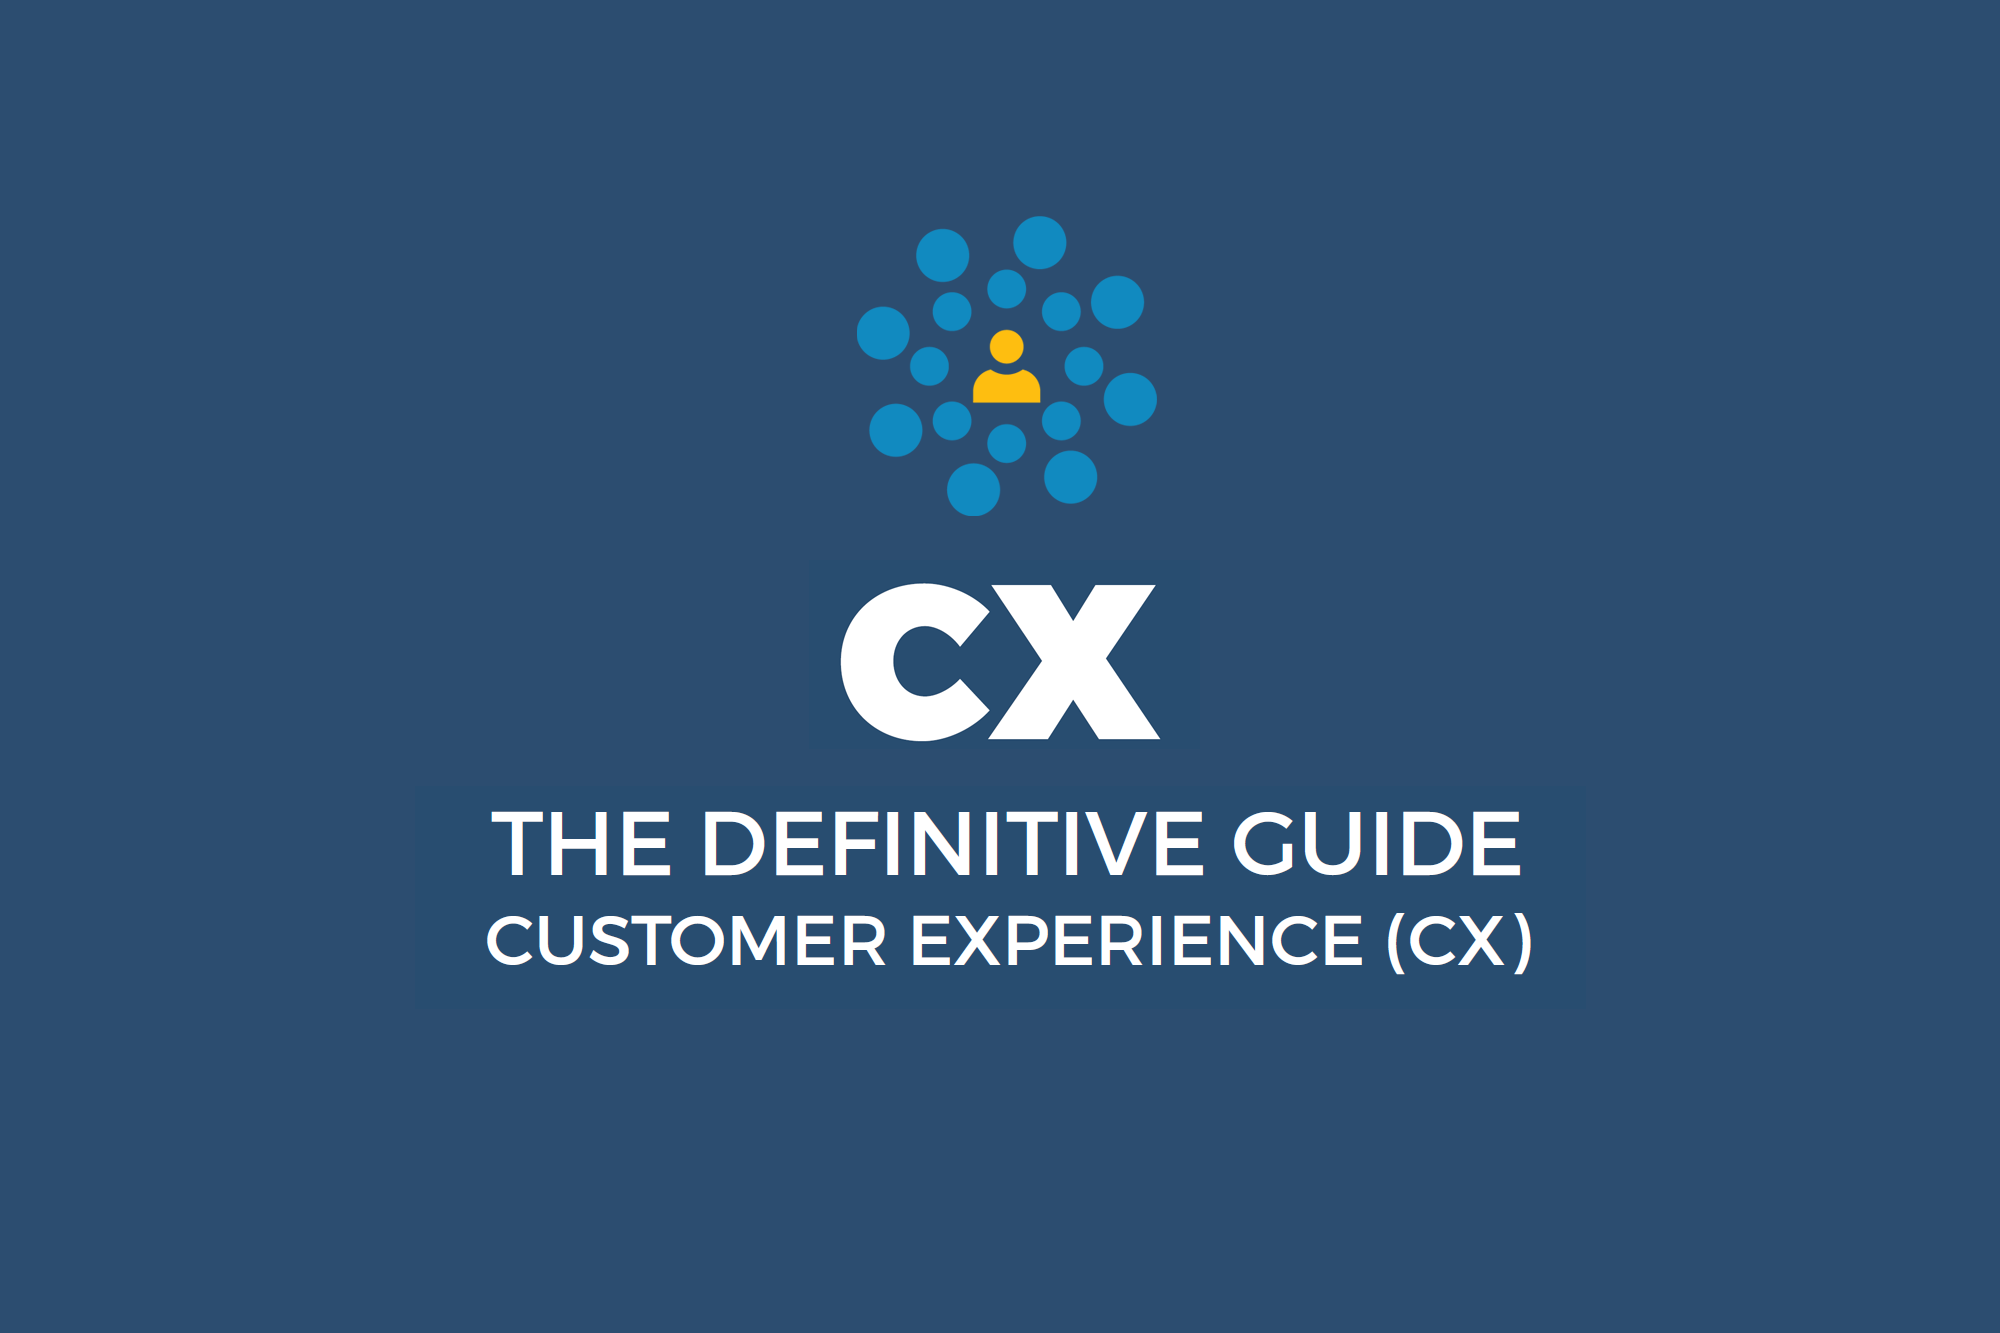 Customer Experience (CX) – The Definitive Guide